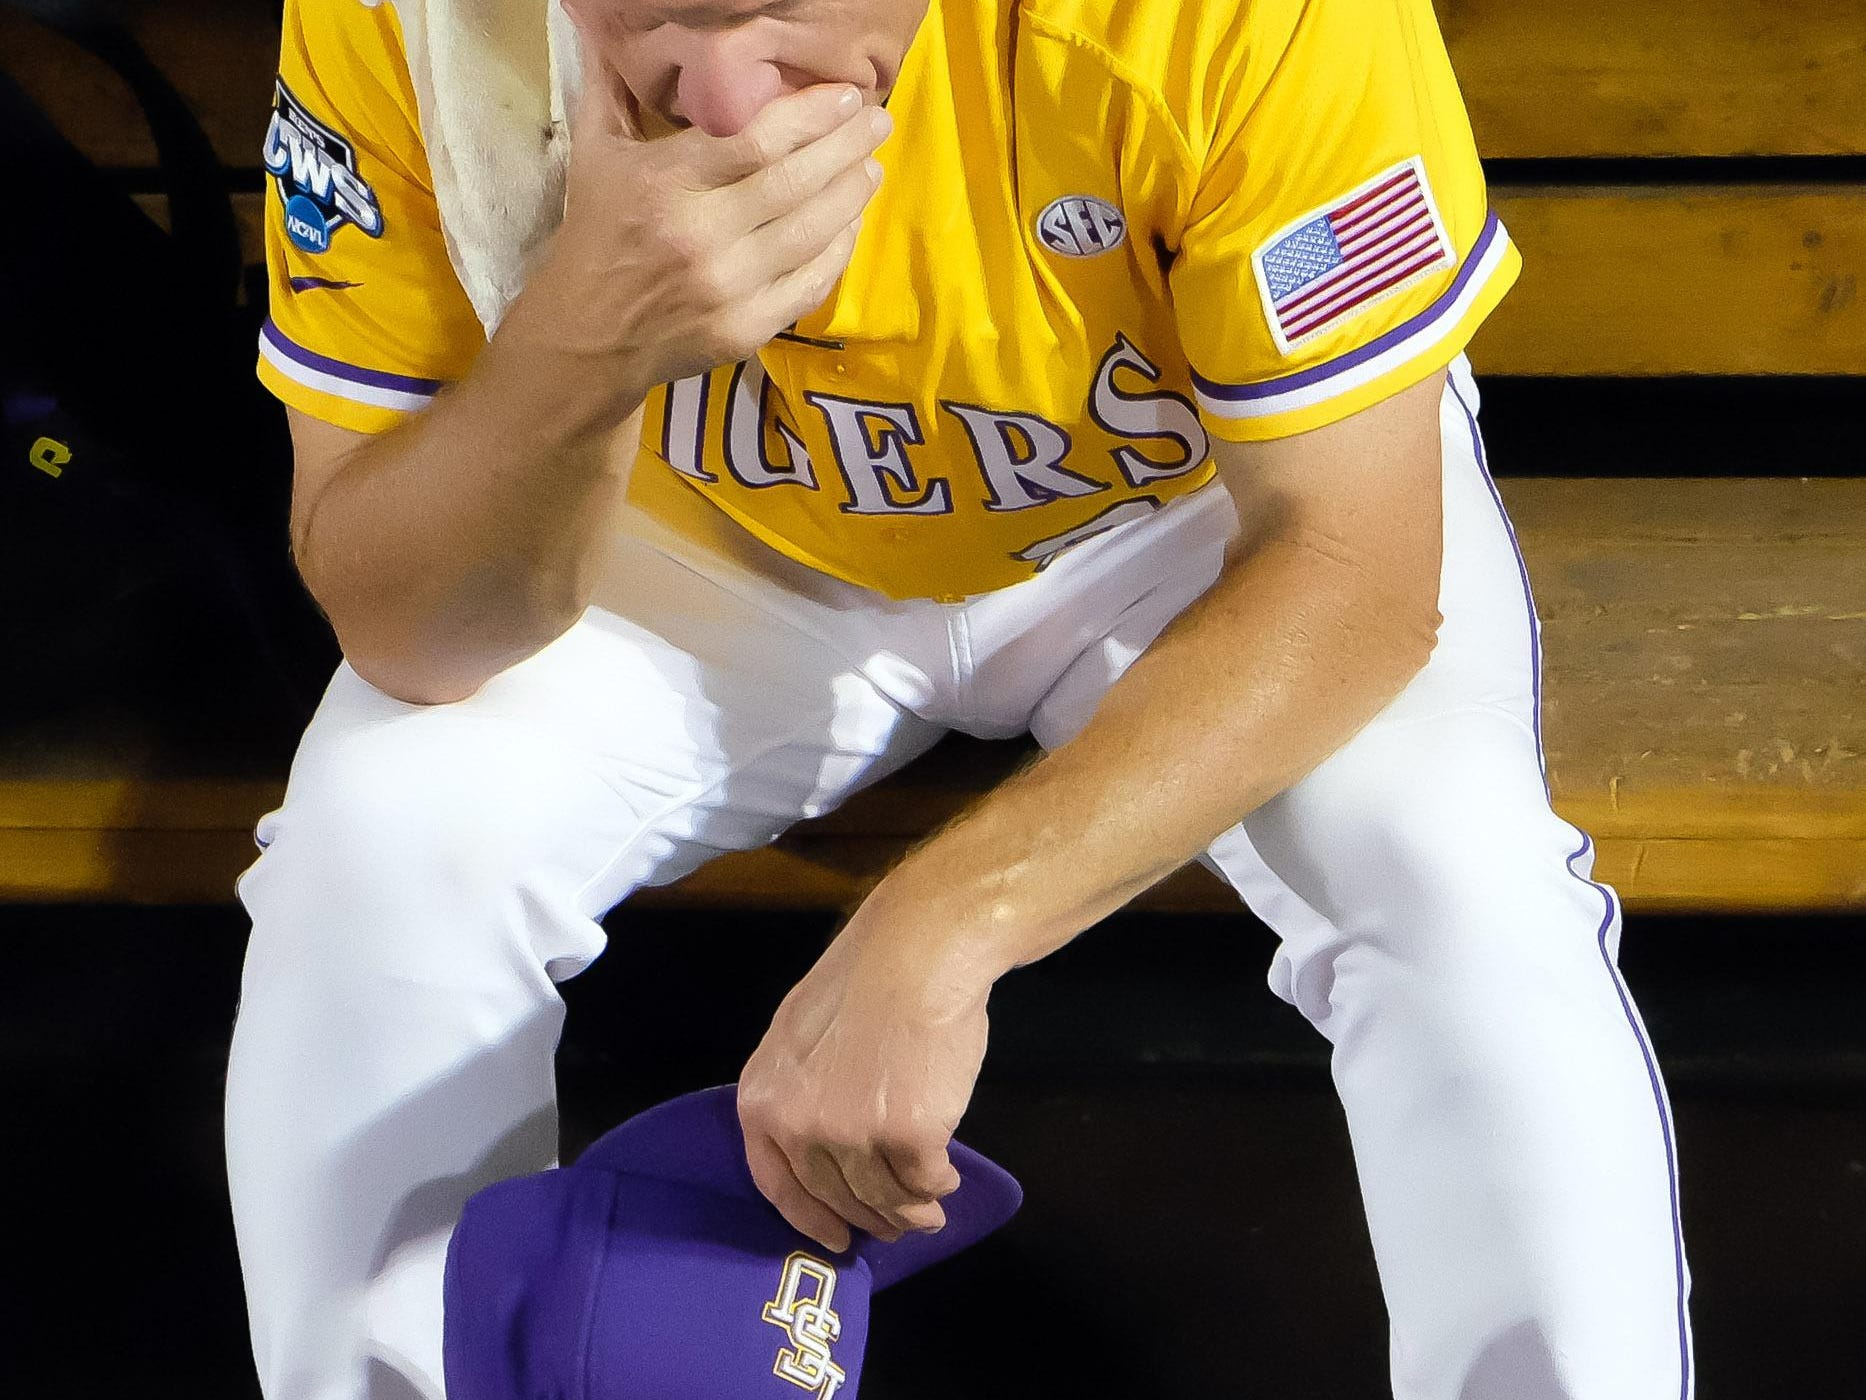 Jun 18, 2015; Omaha, NE, USA; LSU Tigers assistant coach Alan Dunn sits in the dugout after the loss against the TCU Horned Frogs in the 2015 College World Series at TD Ameritrade Park. TCU defeated LSU 8-4. Mandatory Credit: Steven Branscombe-USA TODAY Sports